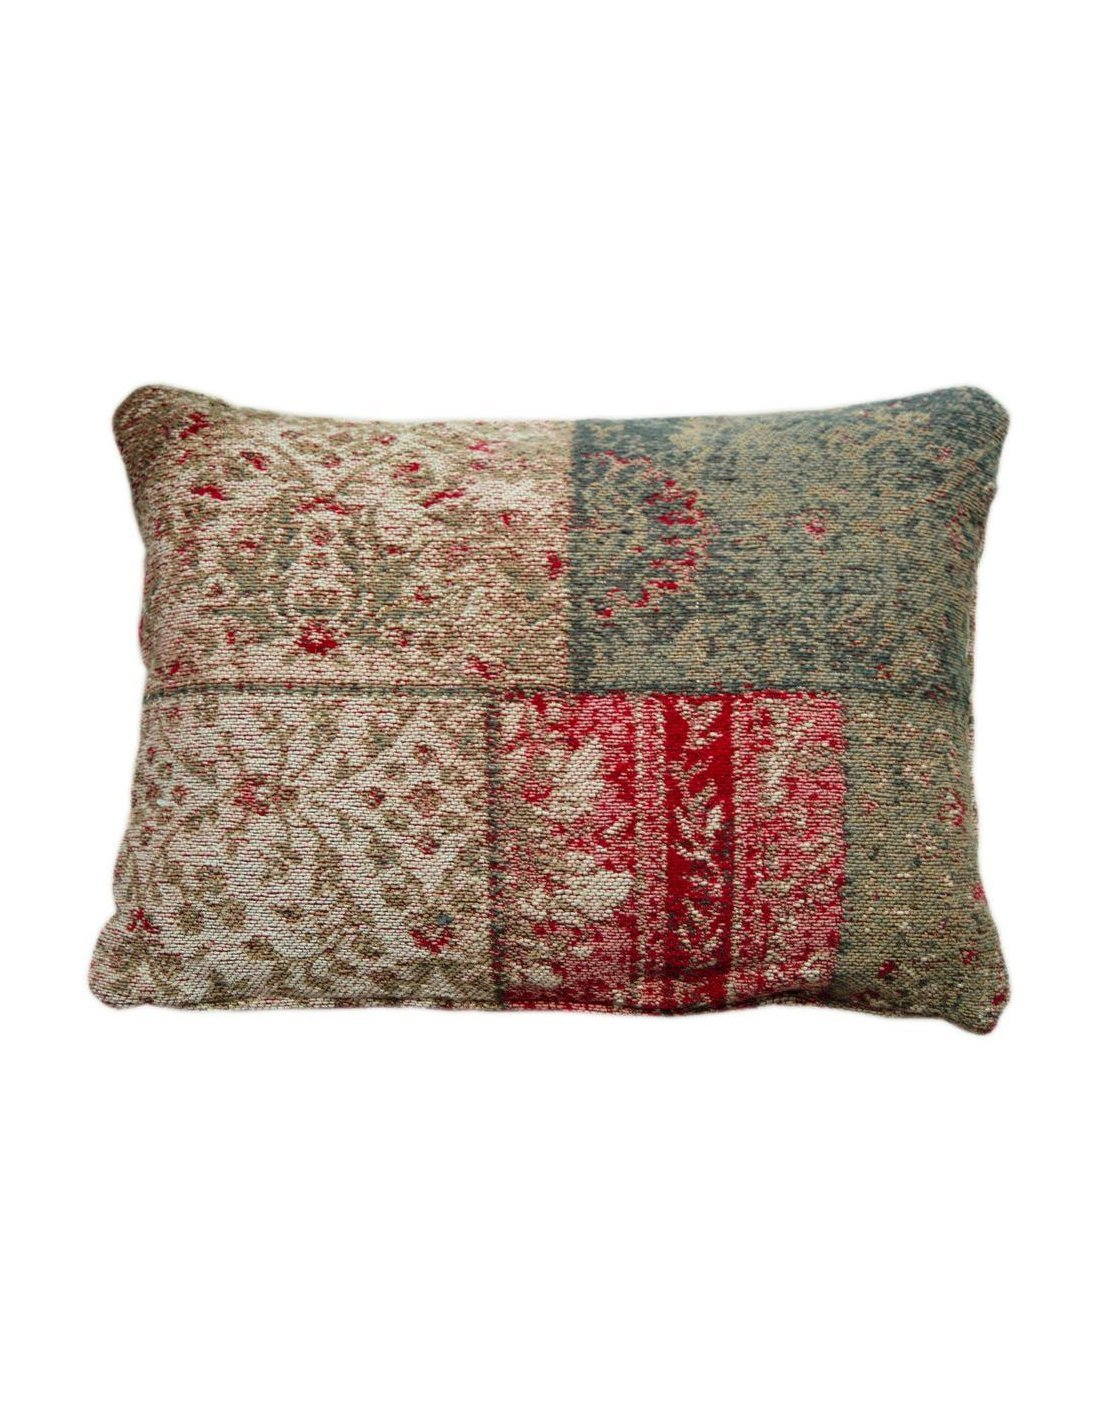 Exterieur Kayoom Coussin Solitaire Pillow 410 Multicolore Kayoom à 37 90